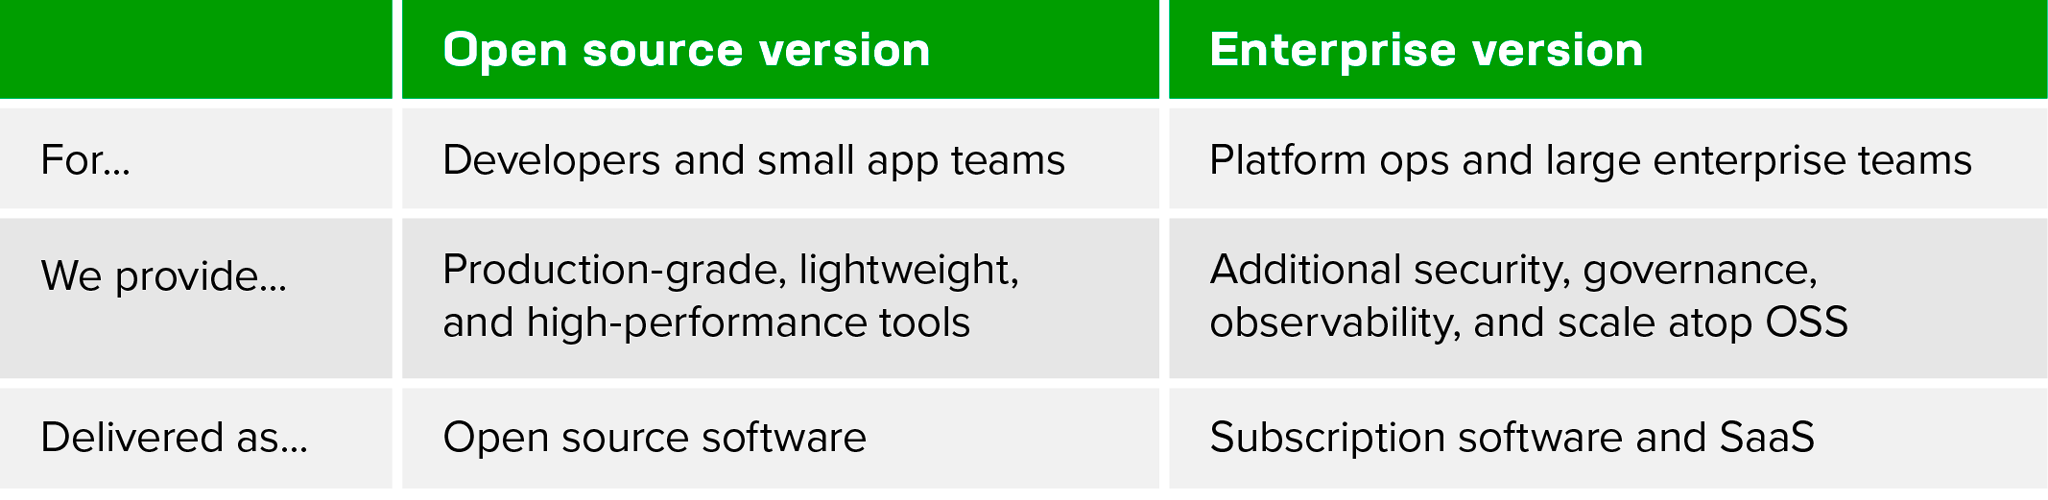 Table specifying how NGINX delivers open source and enterprise software